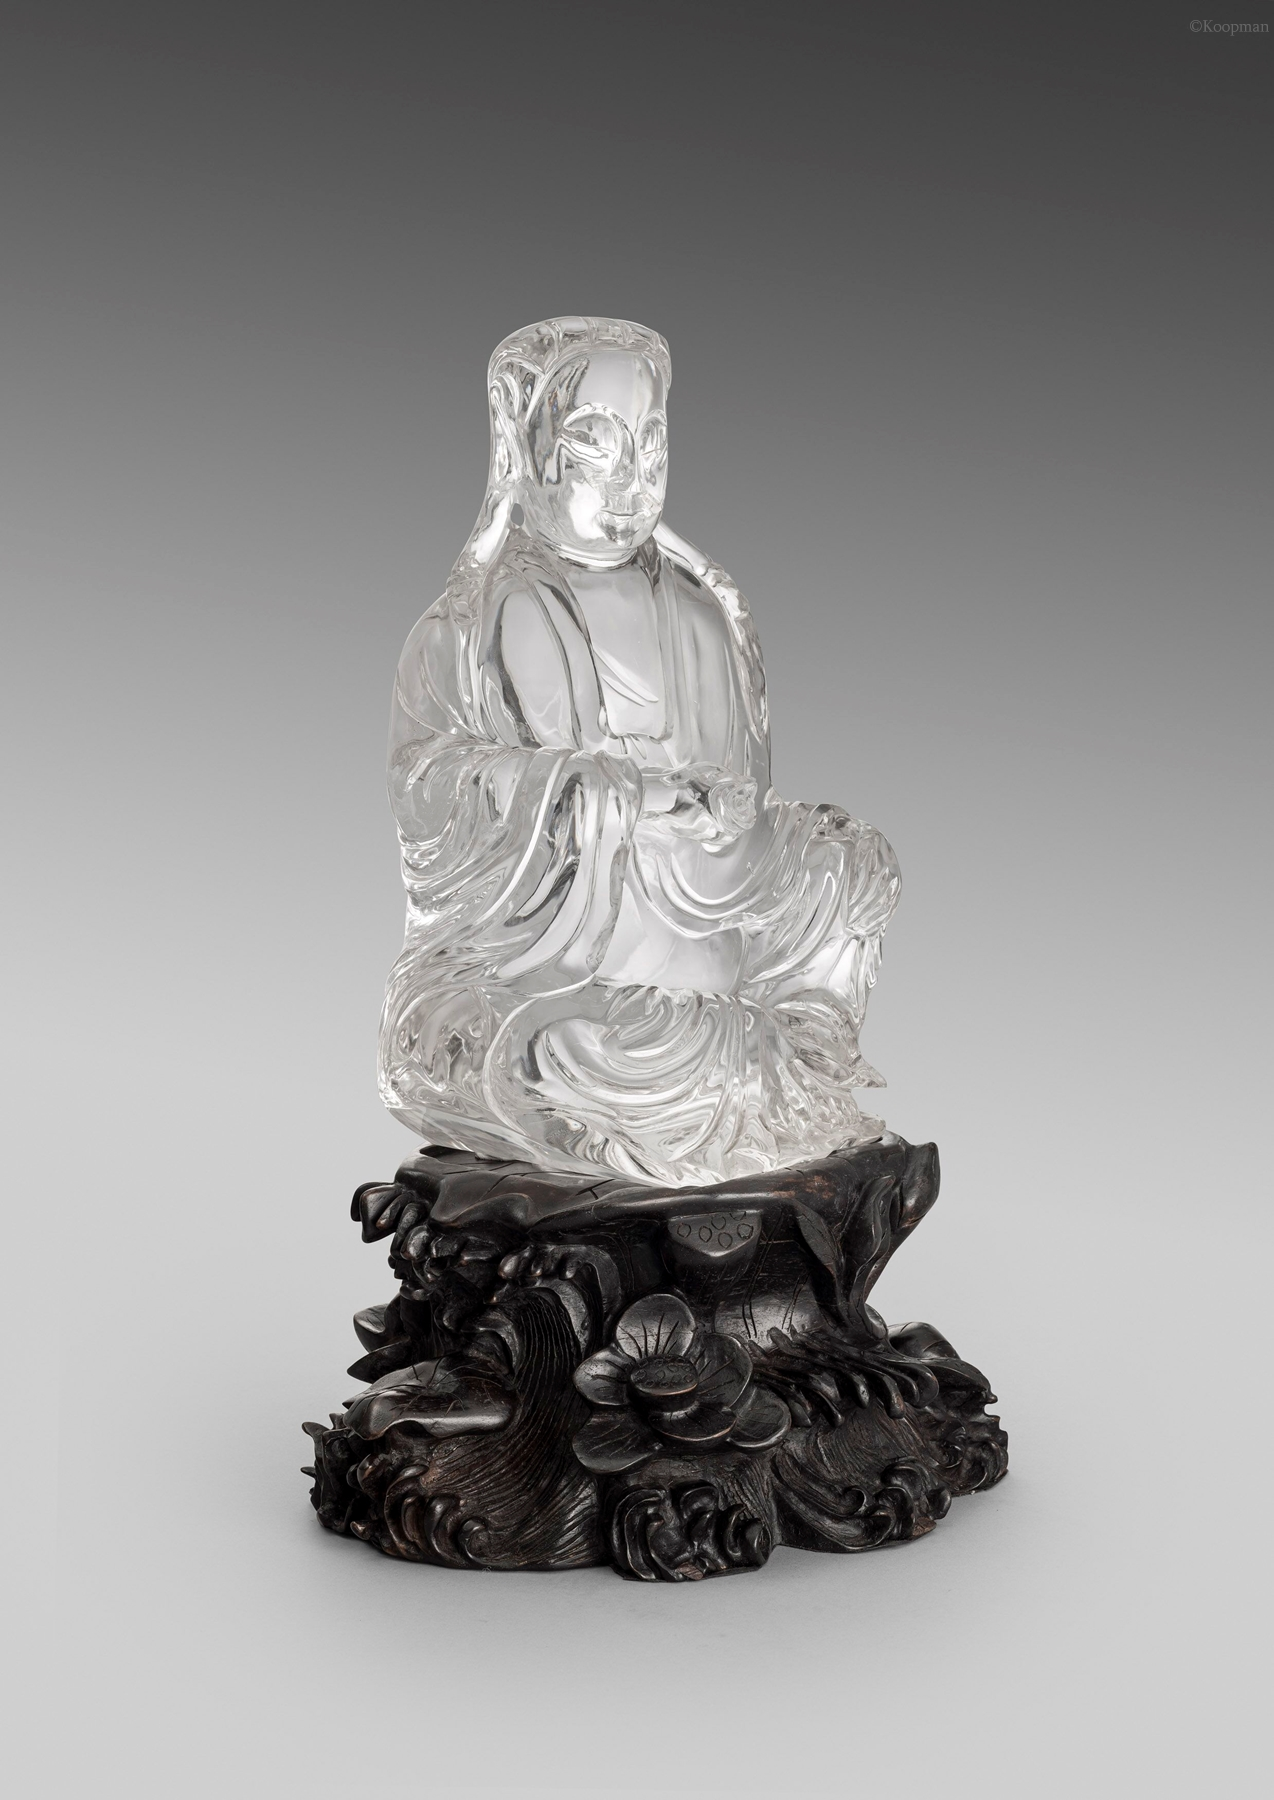 A Chinese 19th Century Rock Crystal Figure of Guanyin, Goddess of Mercy